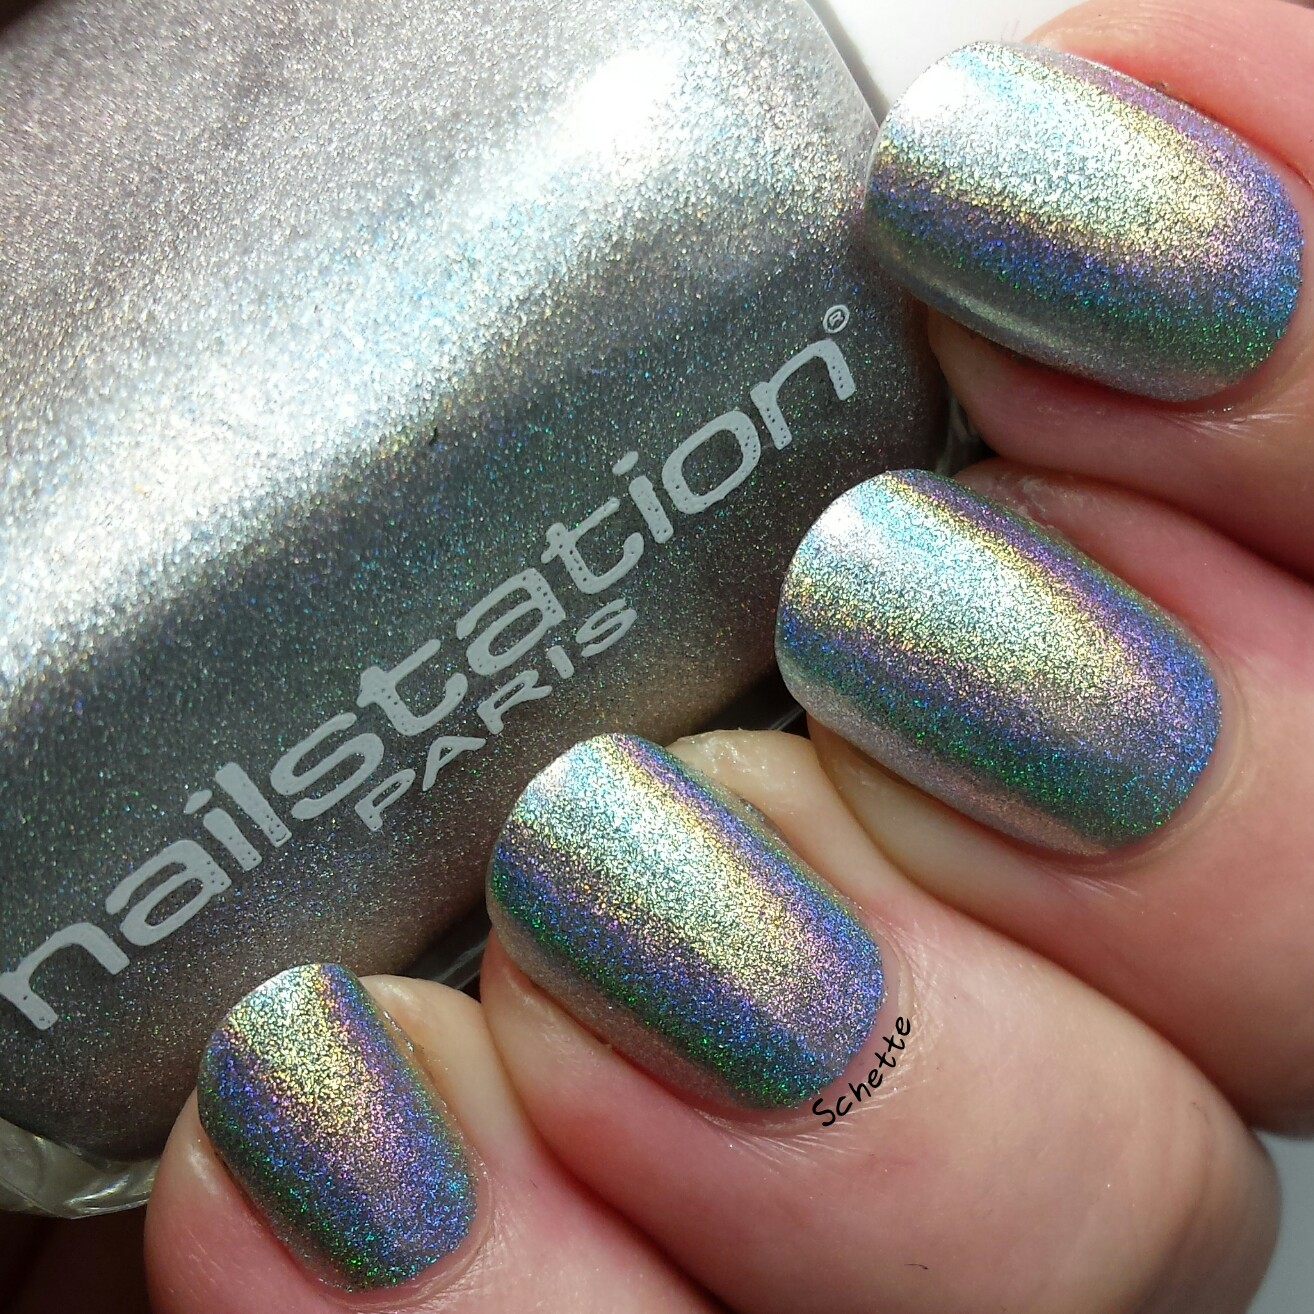 Nailstation : Illusion + Comparison to Chanel Holographic